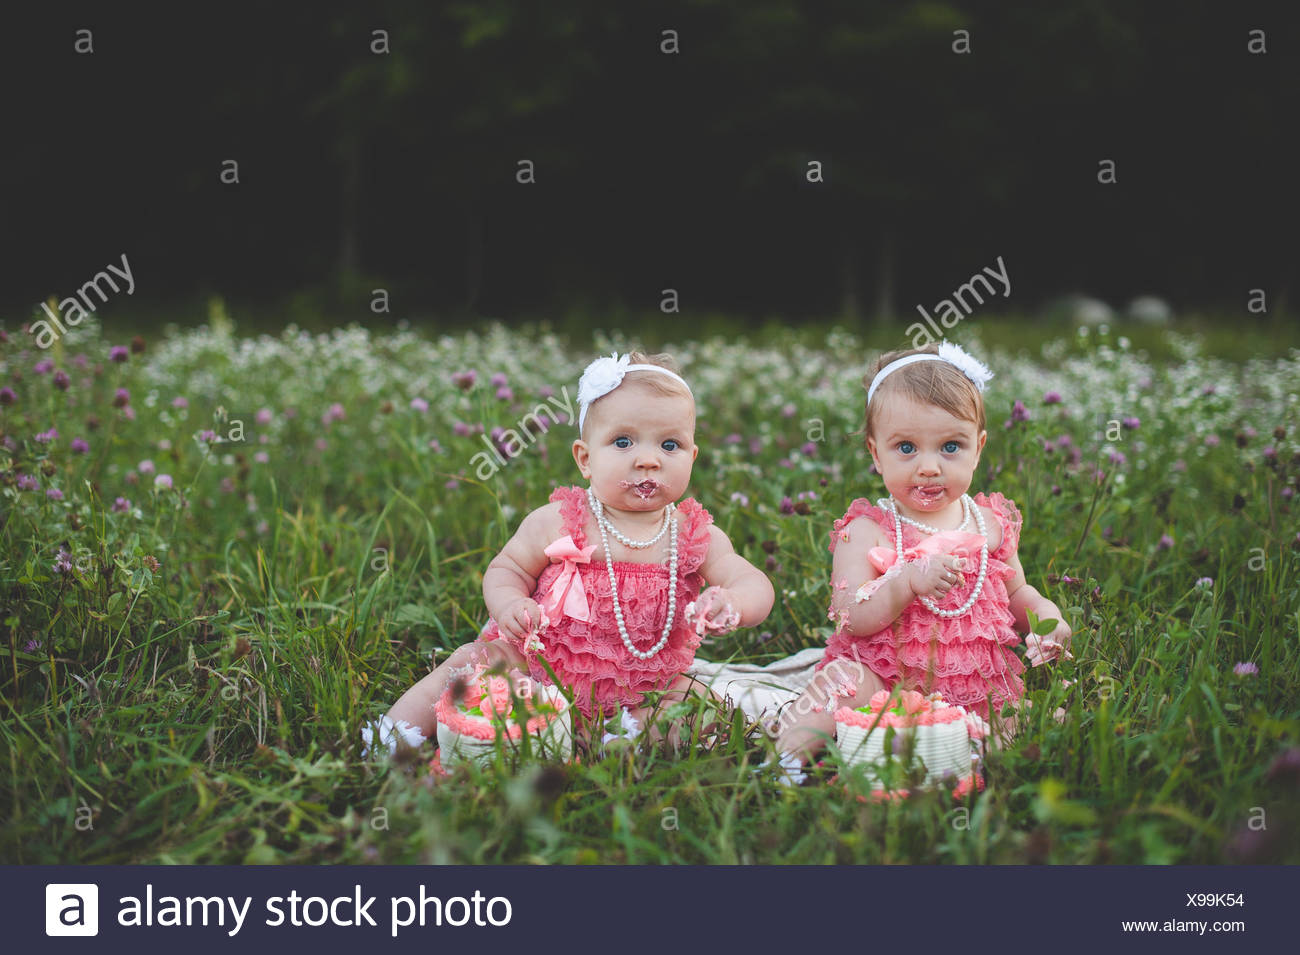 Portrait of baby twin sisters sitting in wildflower meadow eating birthday cake - Stock Image